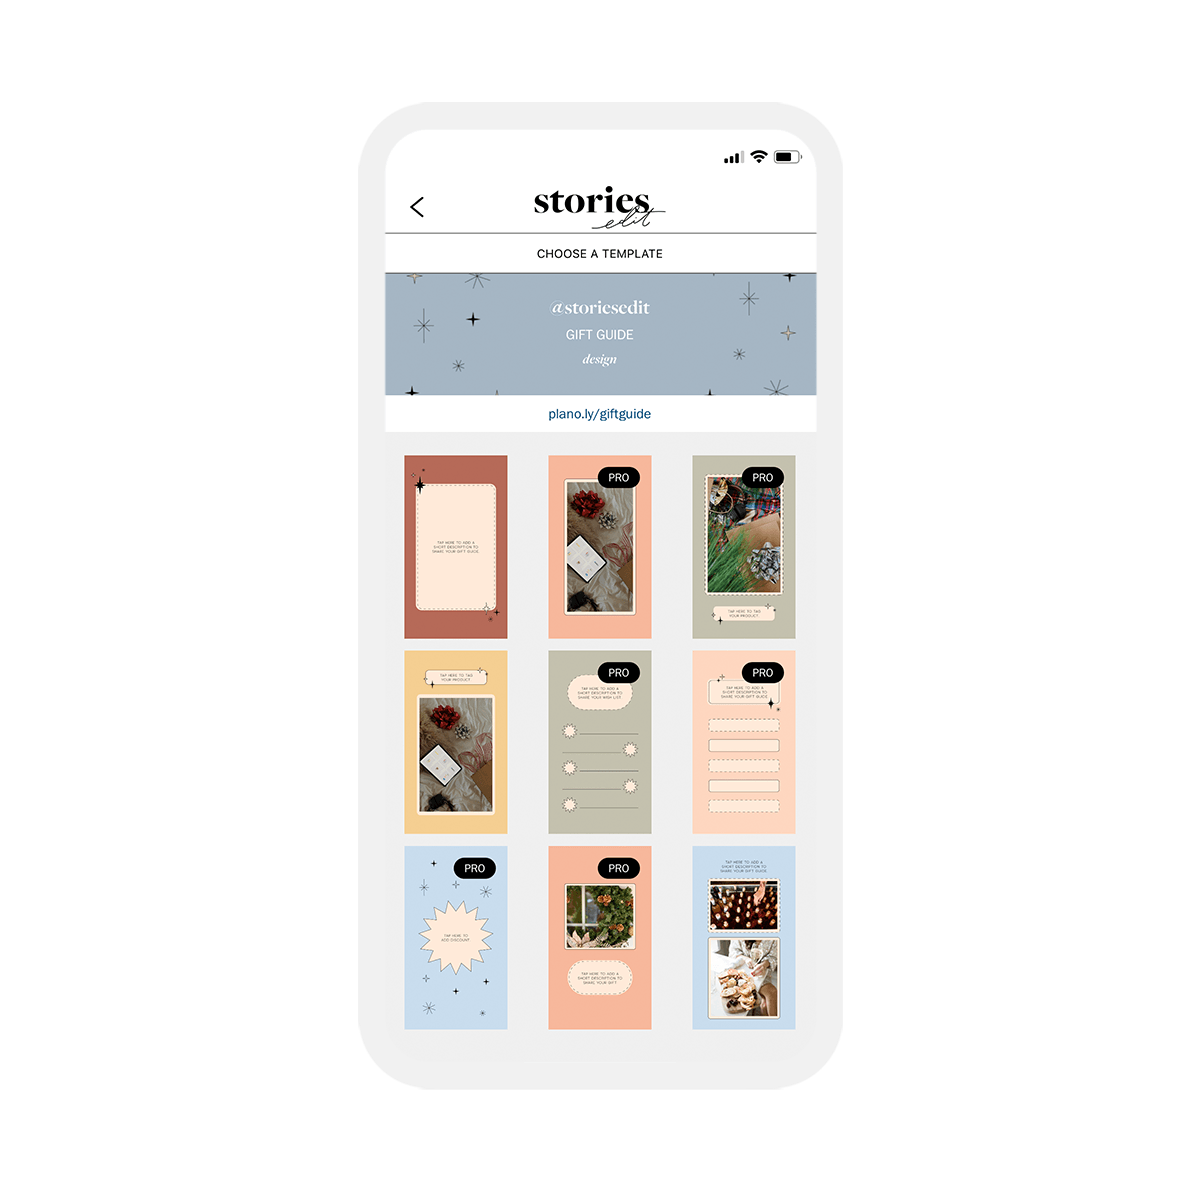 'Gift Guide' collection is available in StoriesEdit